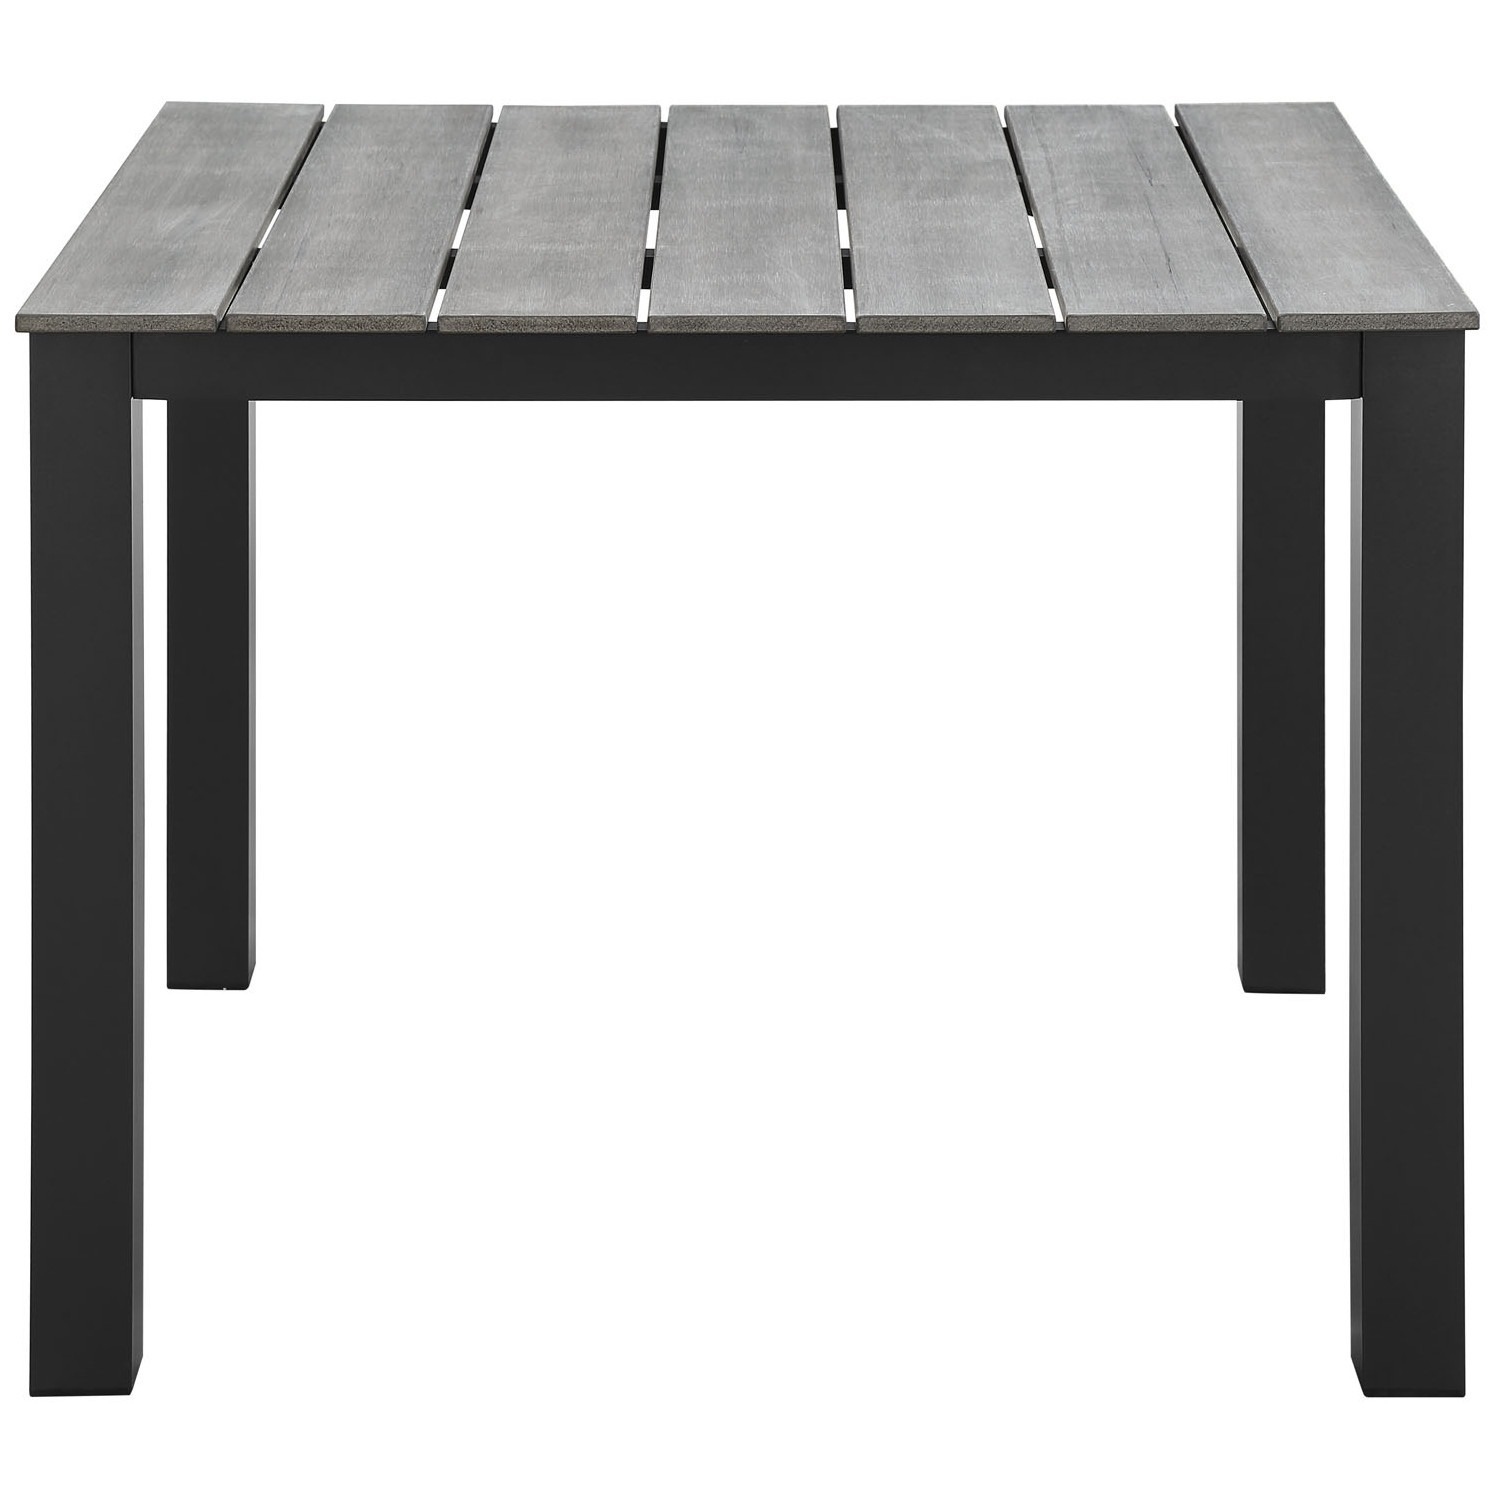 Modern 5-Piece Dining Set In Gray Frame Finish - image-5